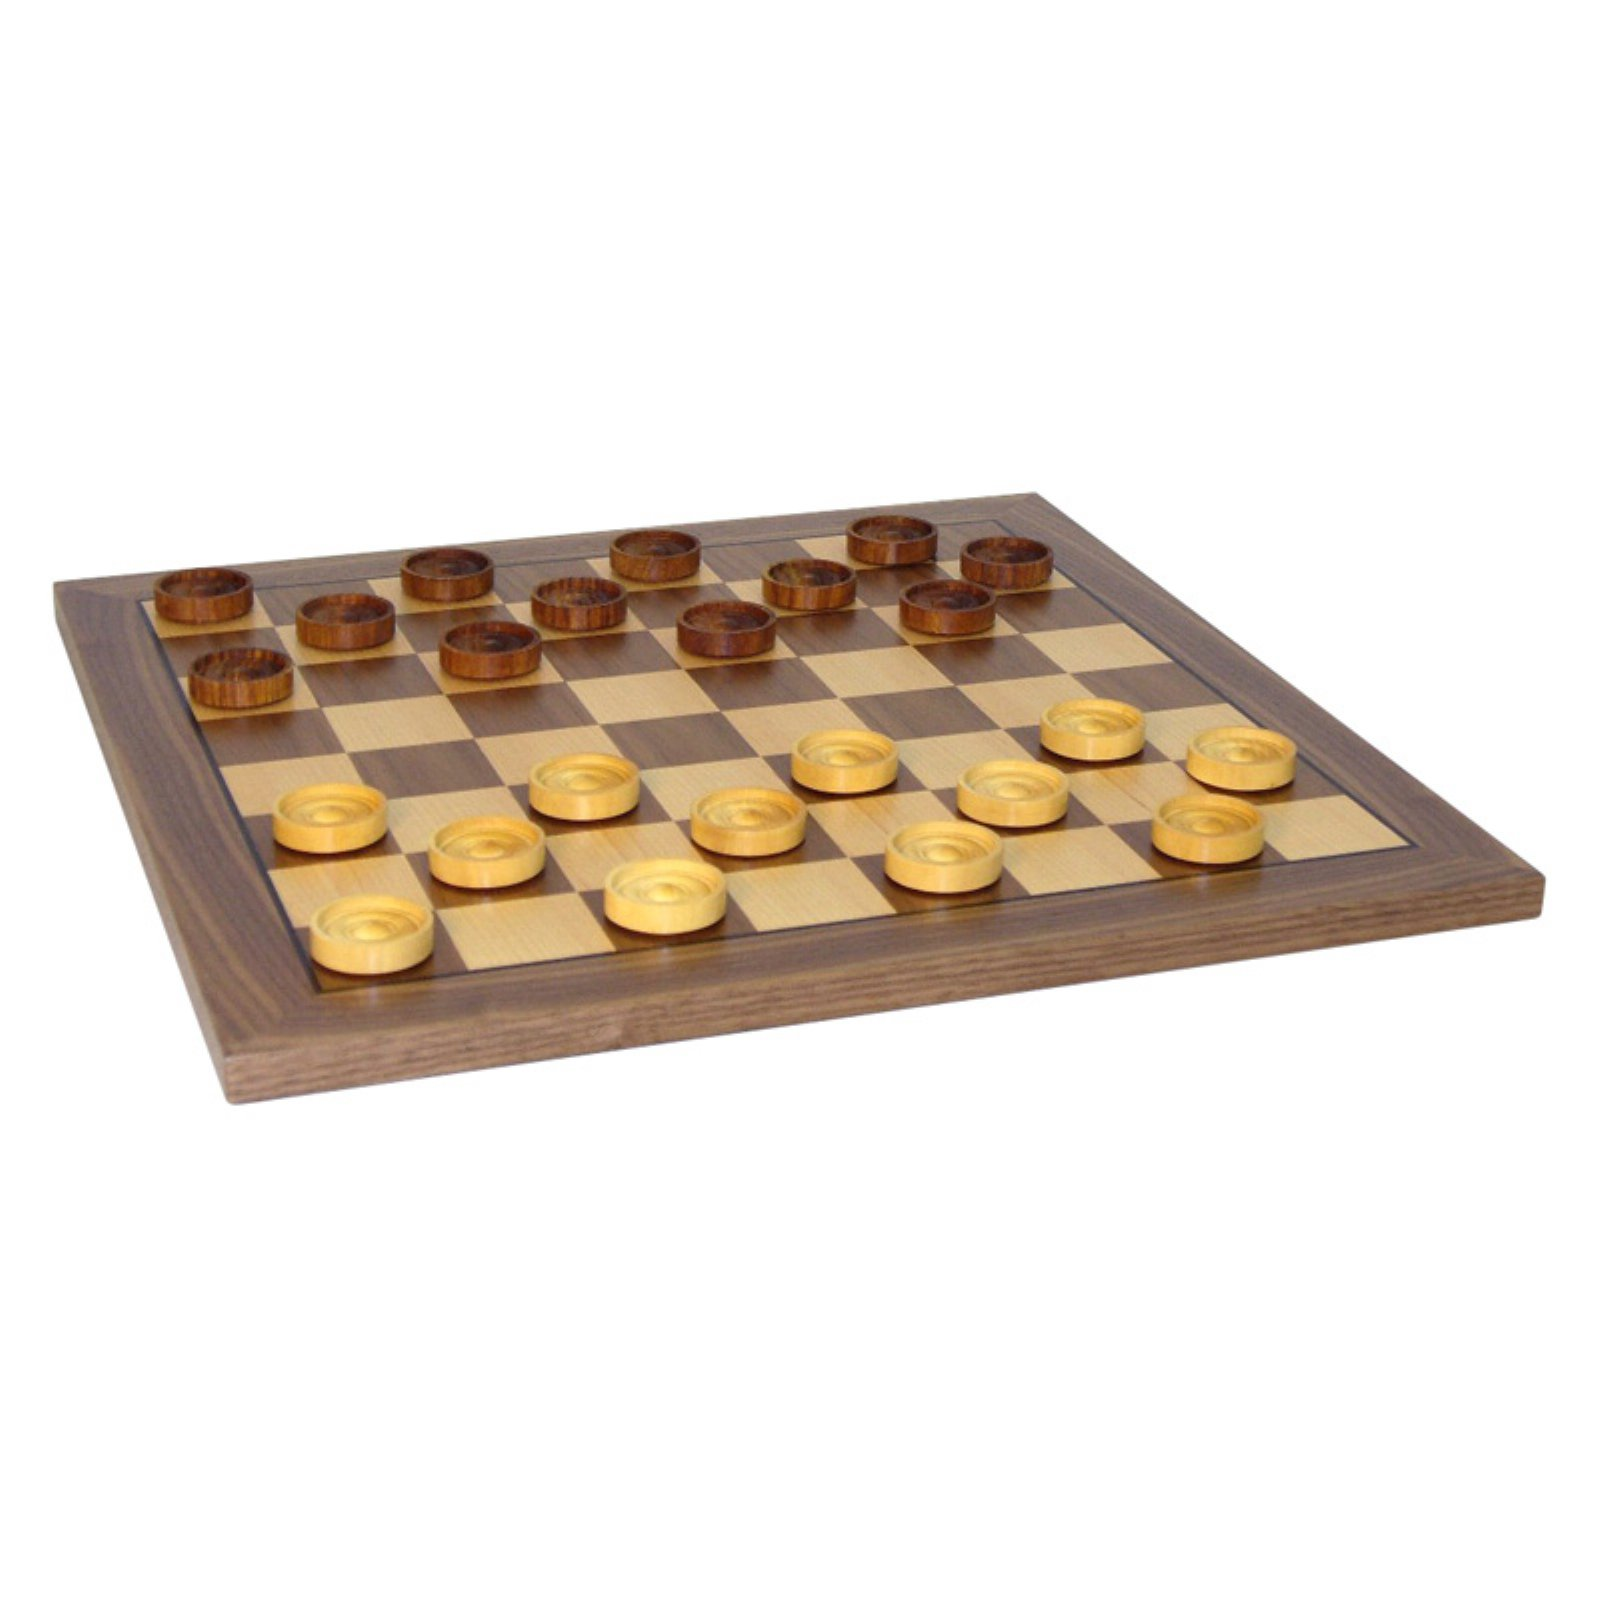 14 in. Wooden Checkers Set by